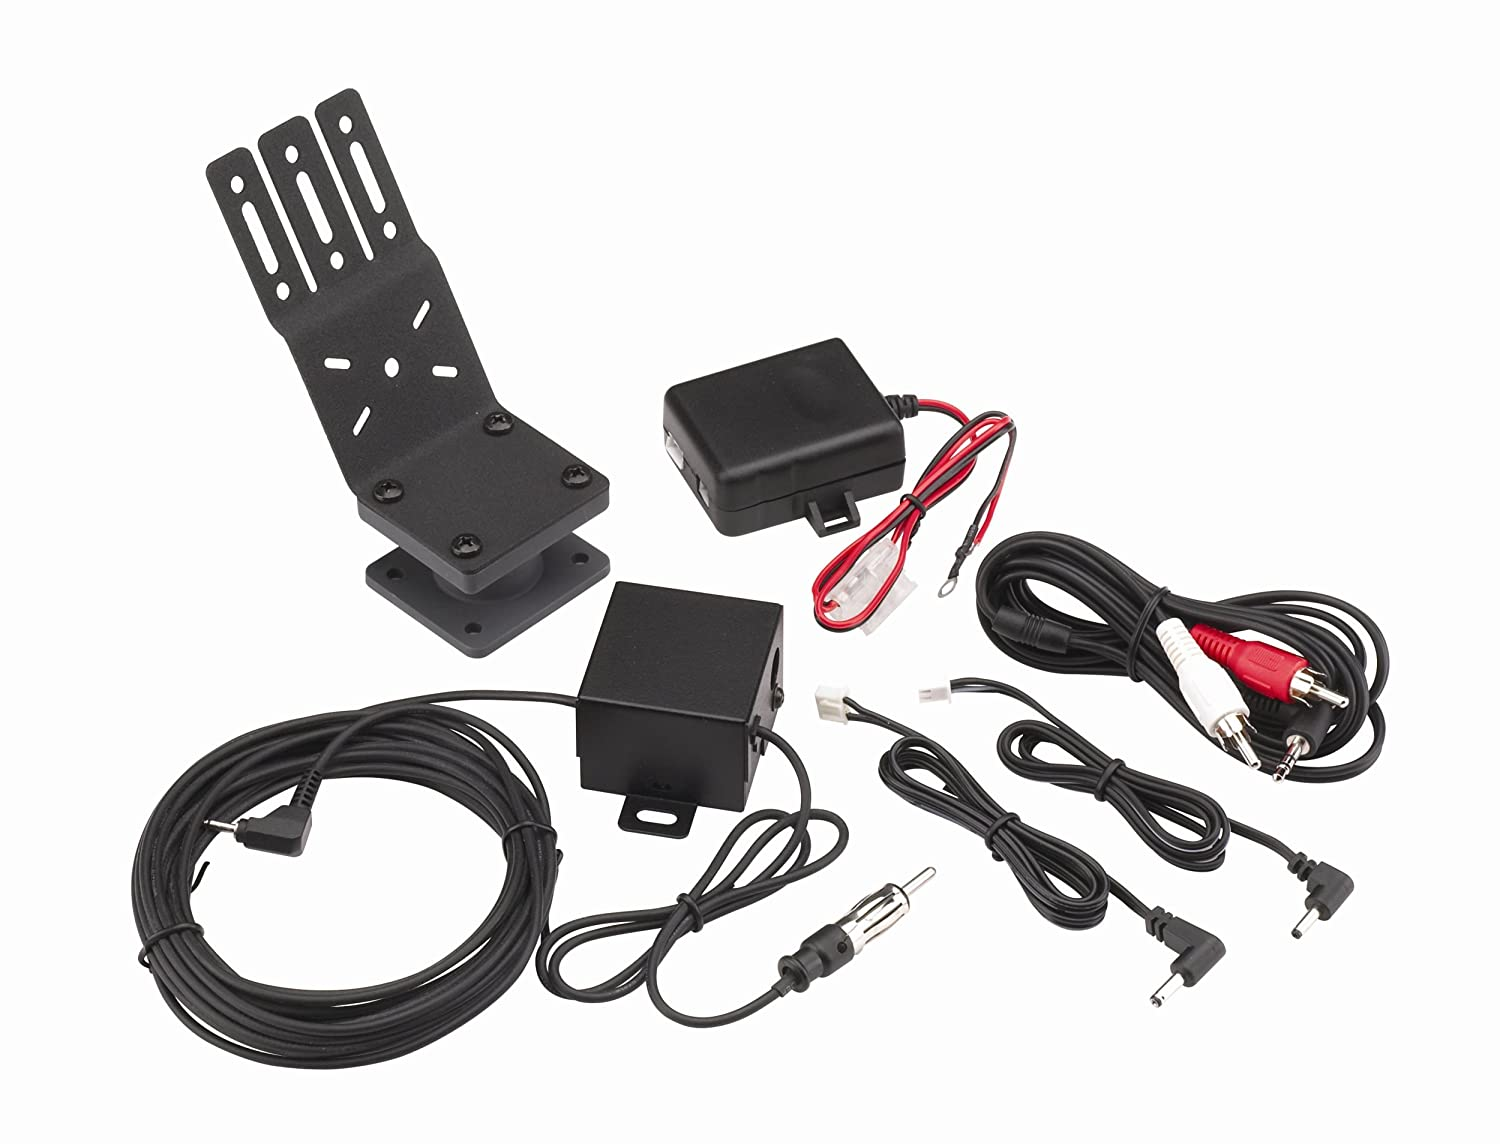 Sirius Professional Vehicle Install Kit Sir Pvk1 Gm Fuse Box Connectors Electronics